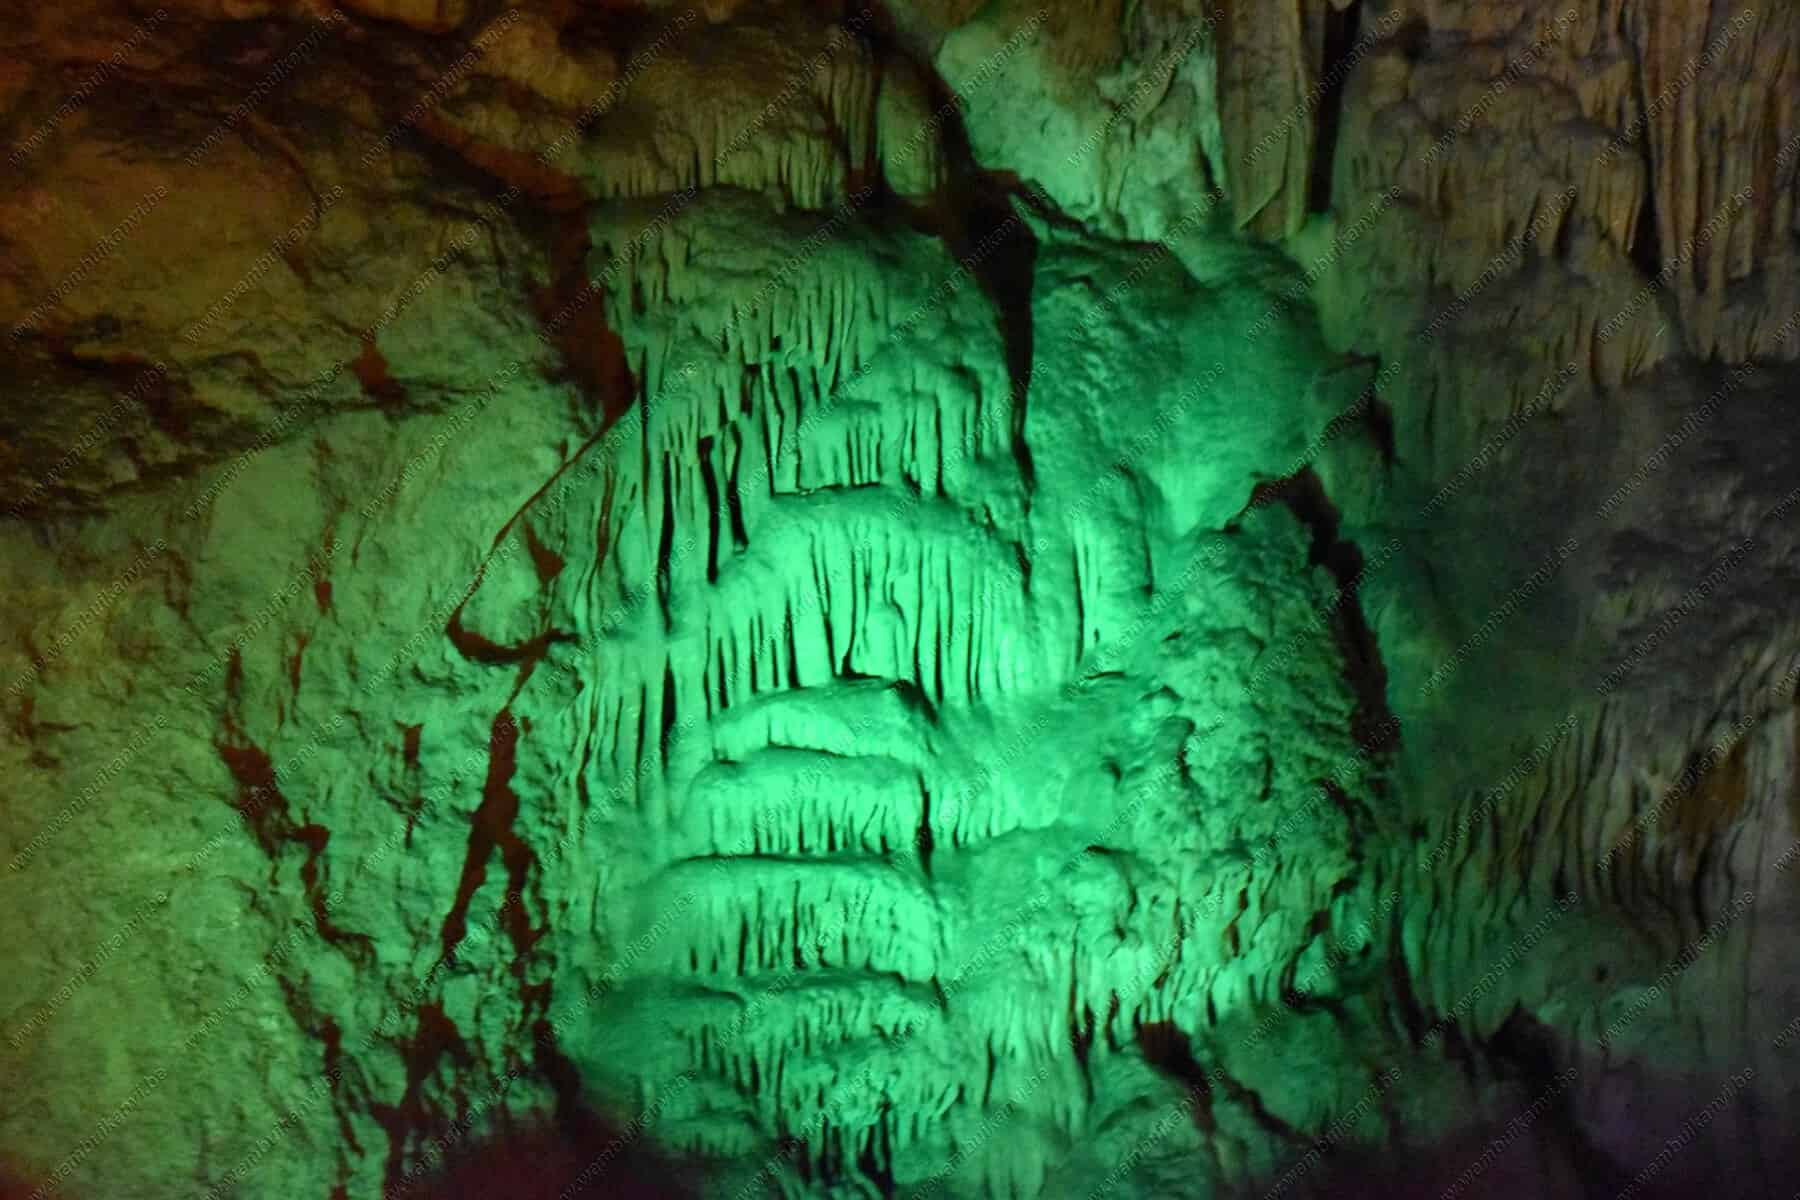 the lighting in the cave